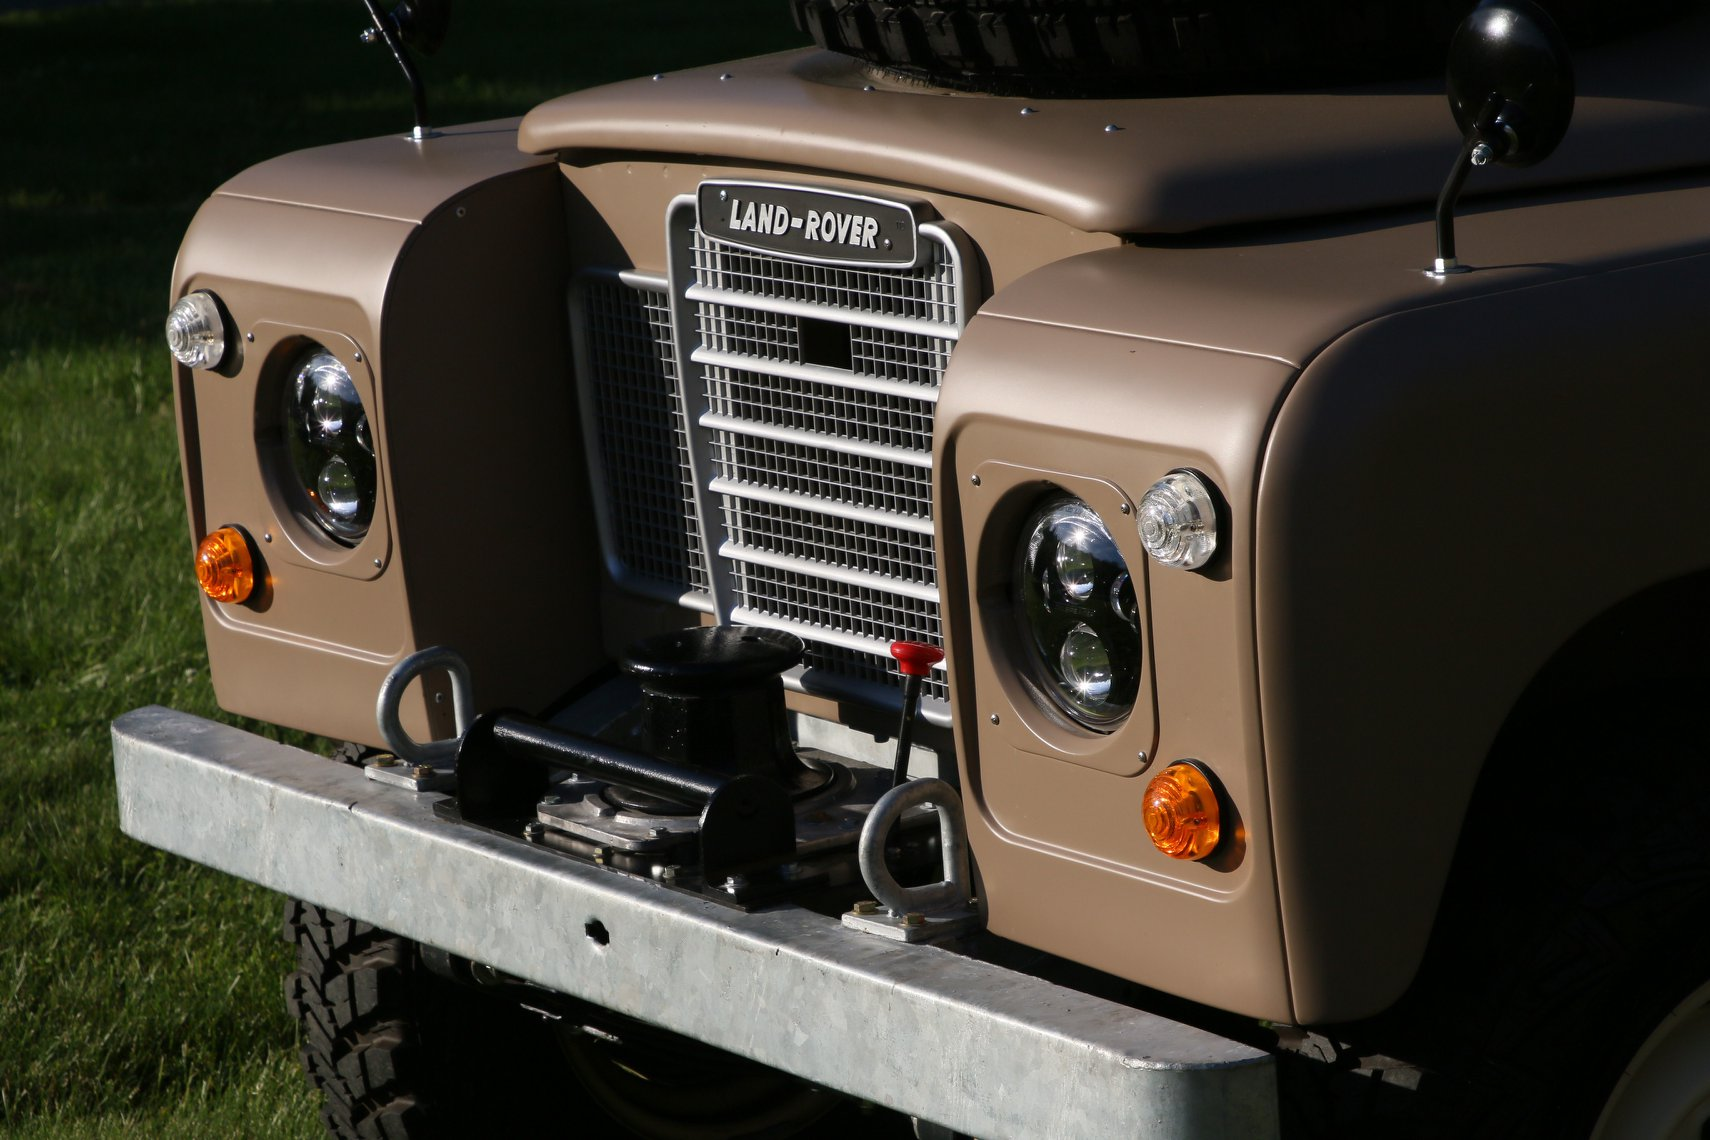 1972 Land Rover Series II 109 Inch Pickup Restoration Photo f